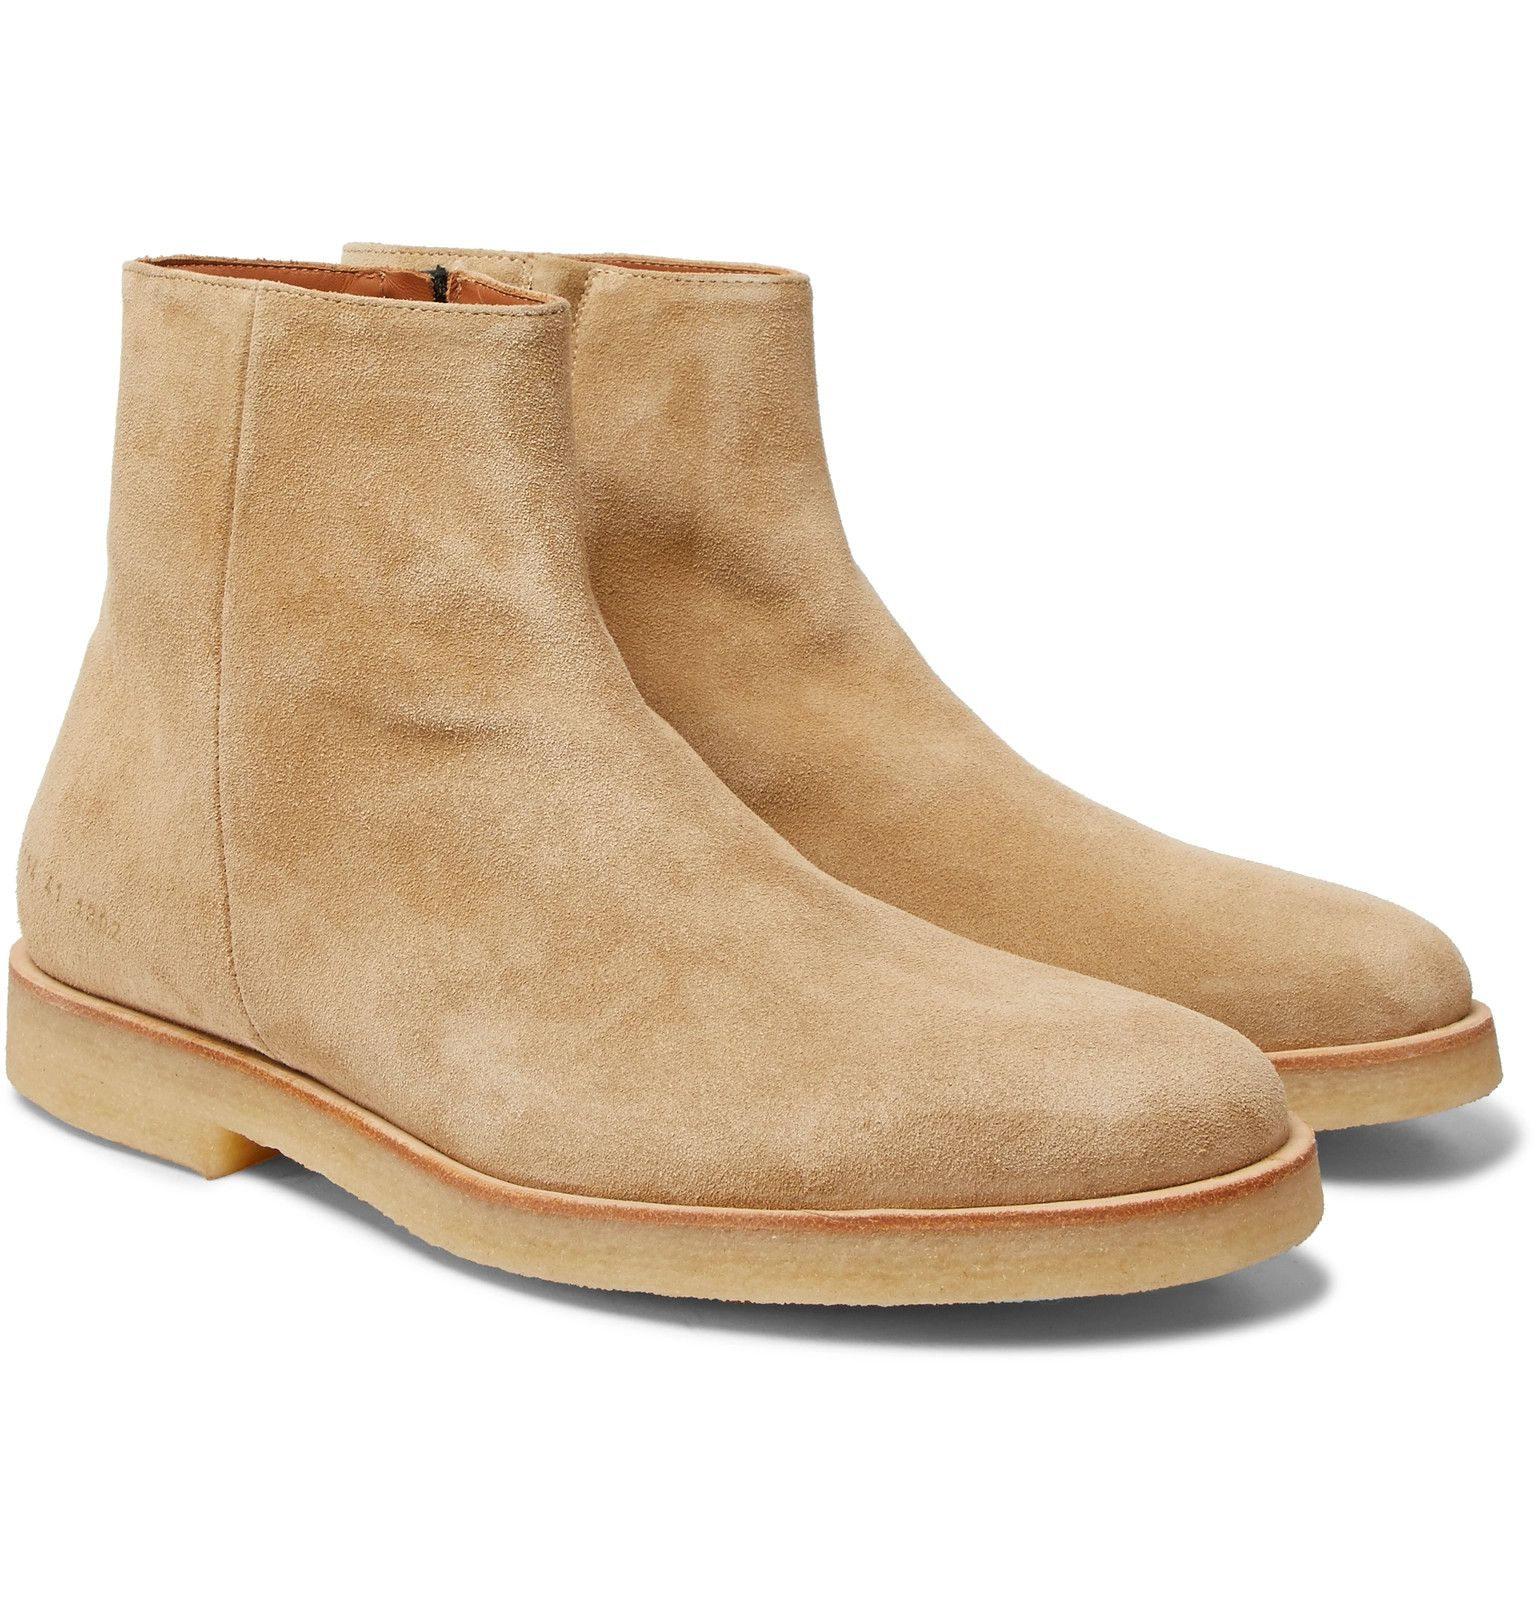 Common Projects side-zip suede boots